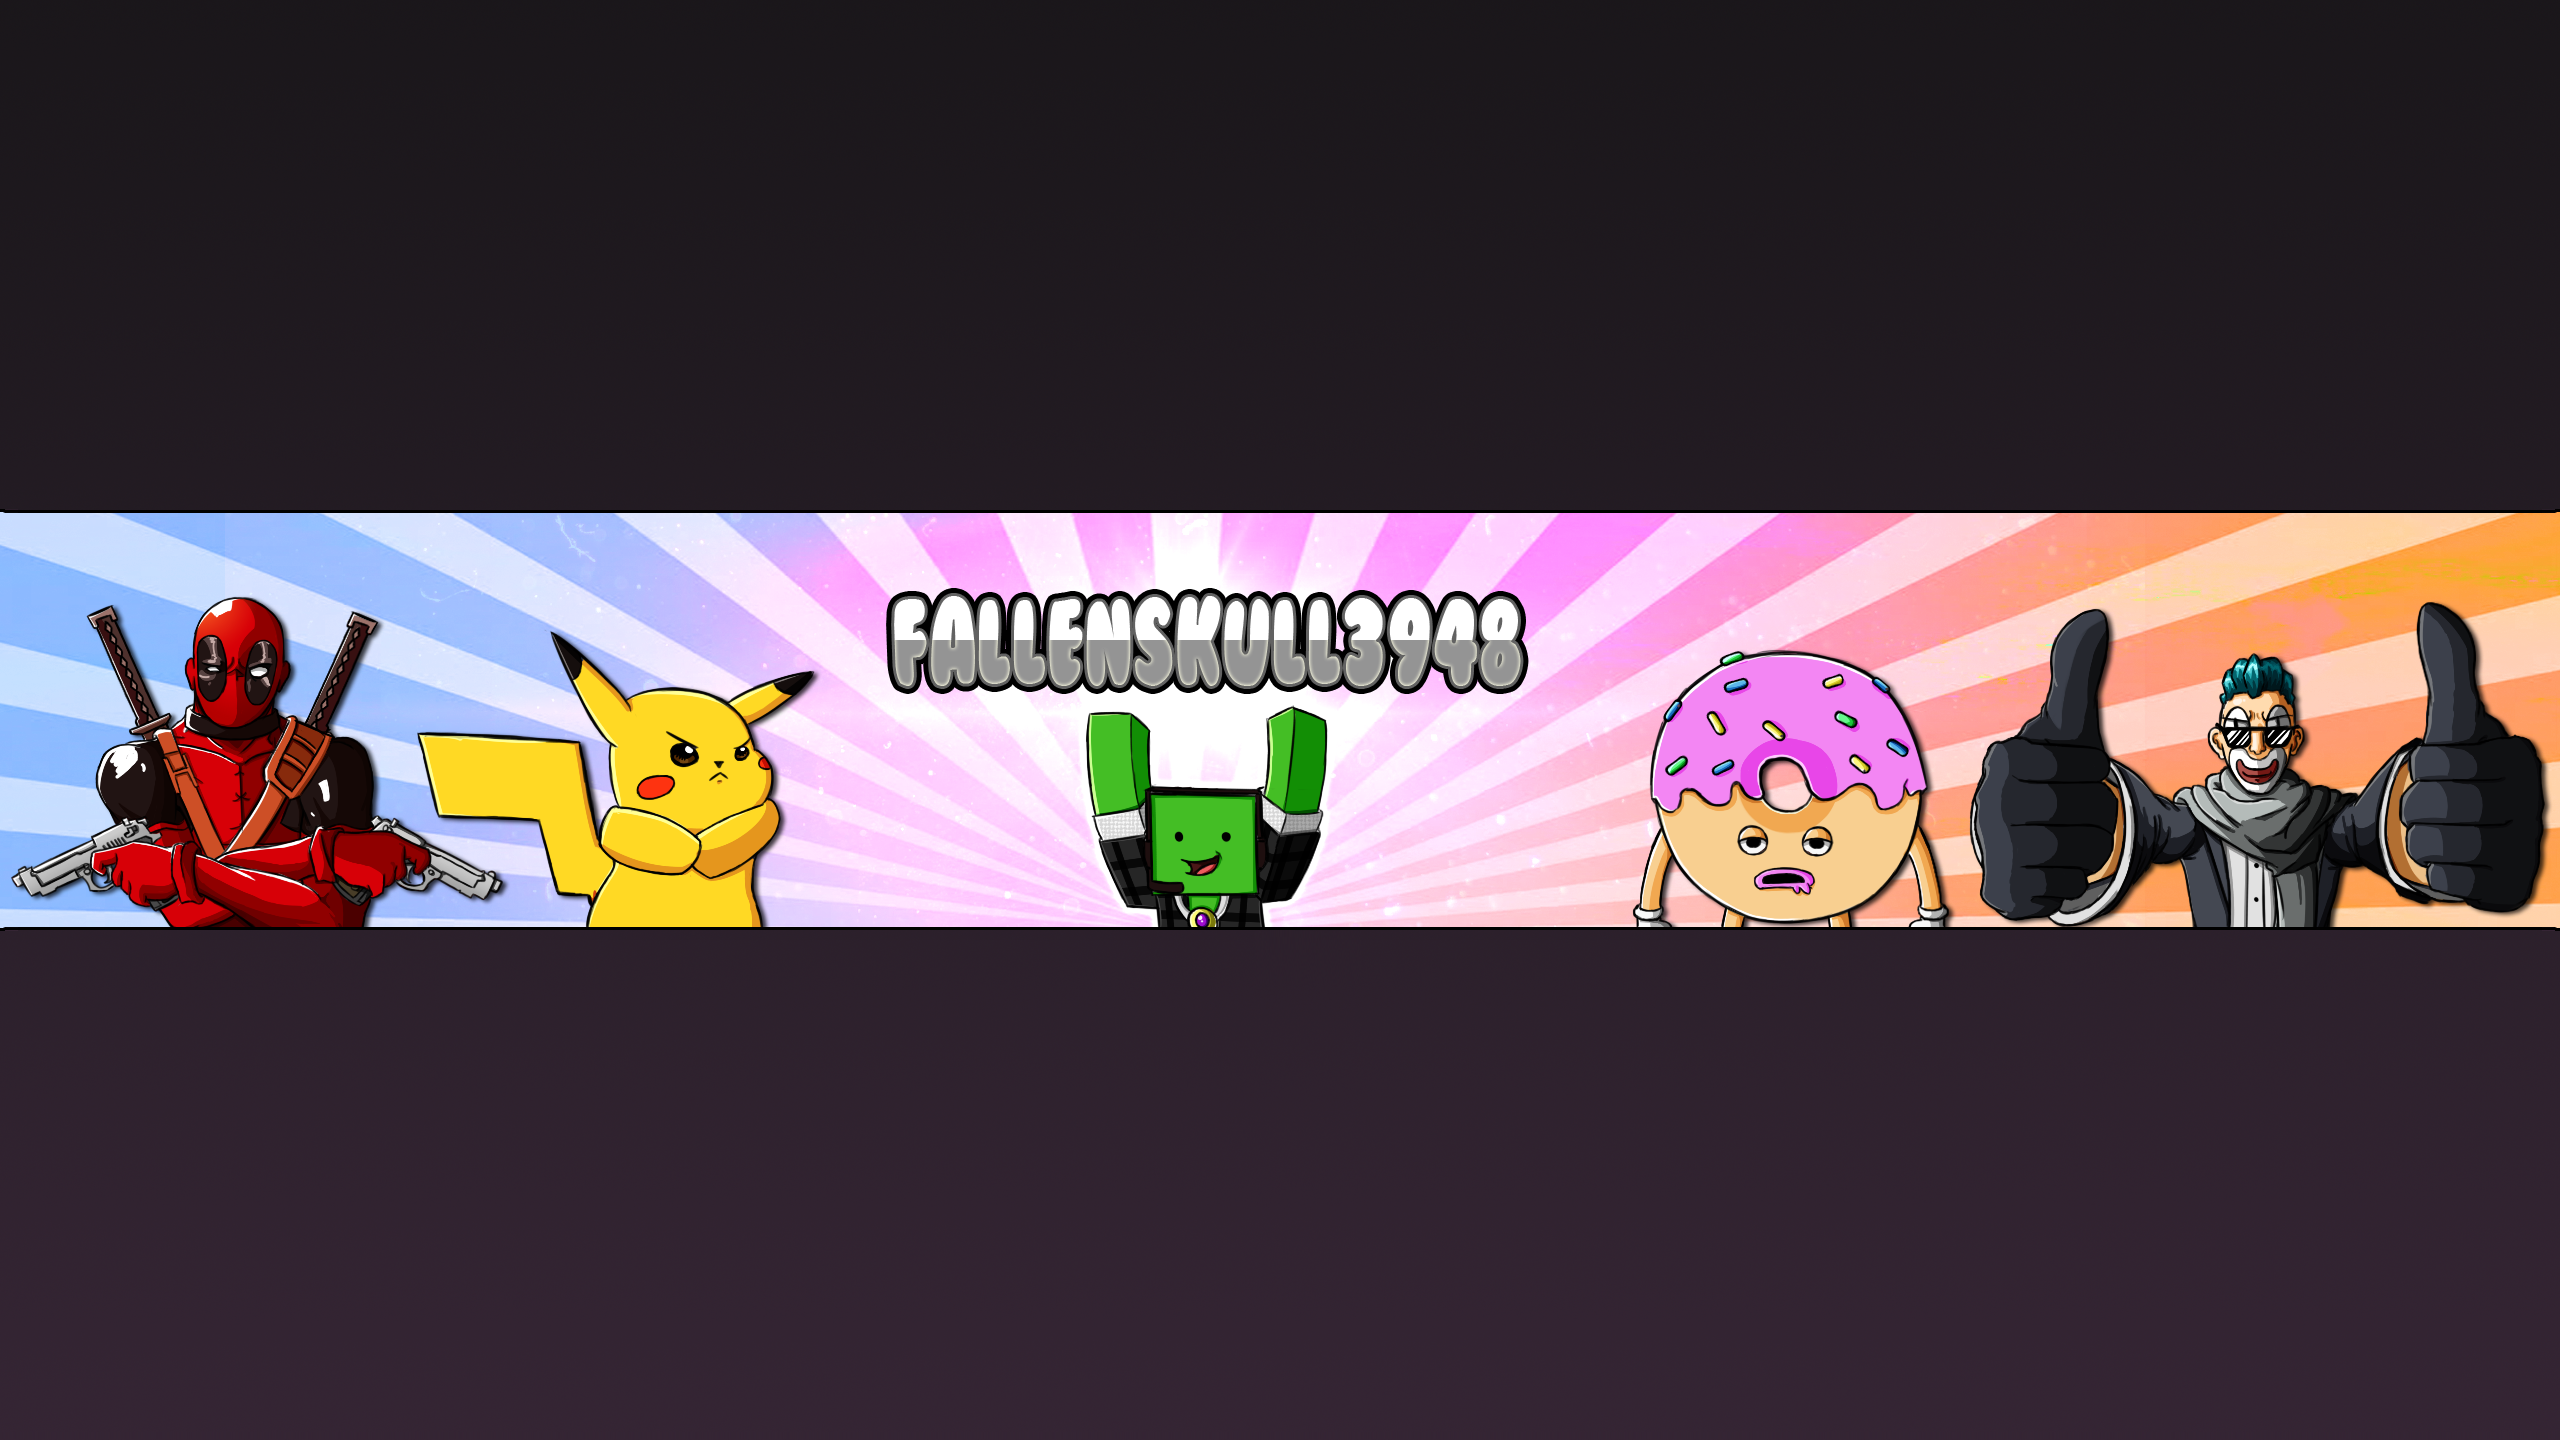 Fallenskull3948 Youtube Banner By Shadowvenom718 On Deviantart